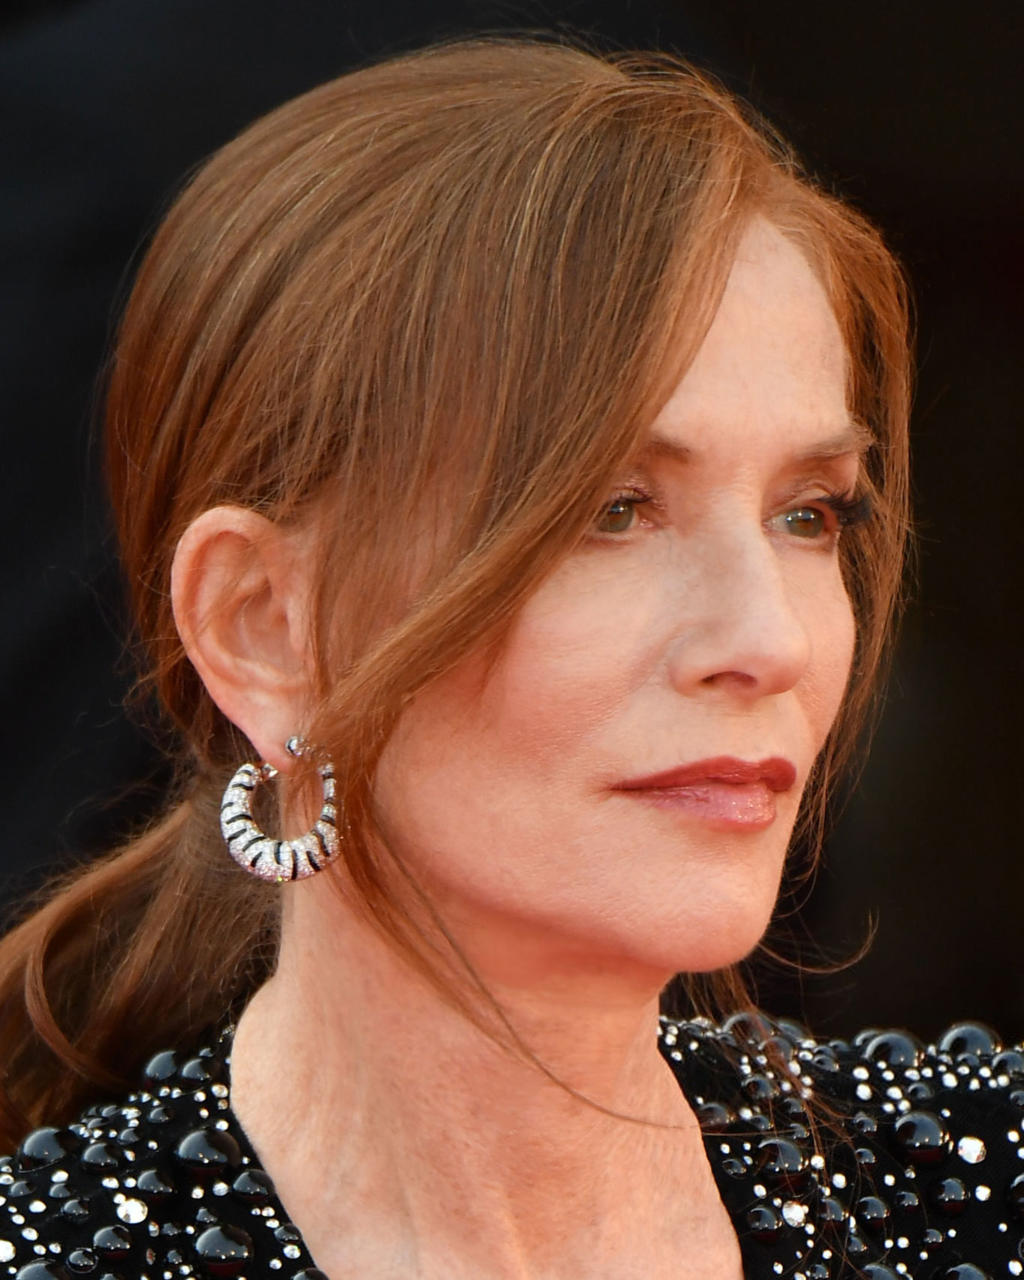 Isabelle Huppert - Hair and Make Up by Massimo Serini